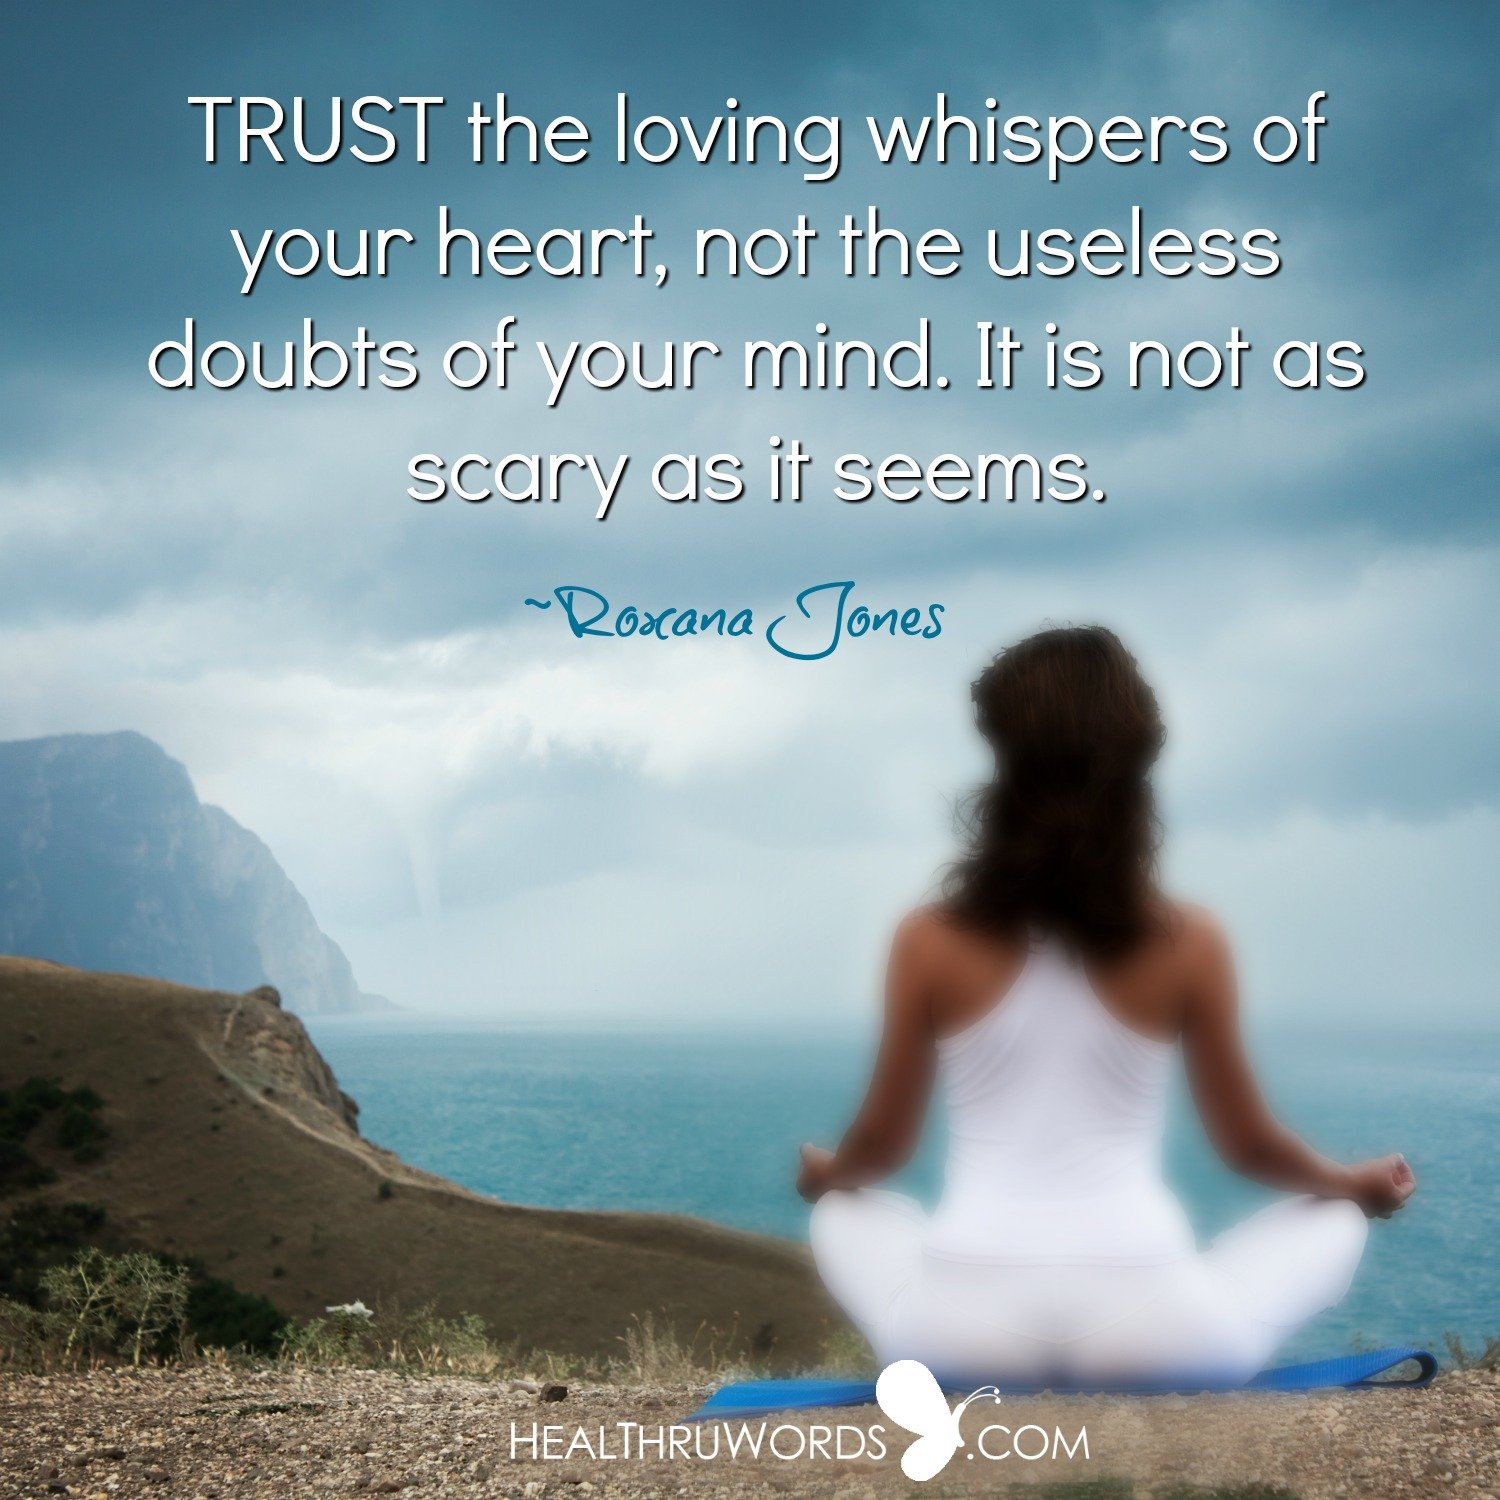 Inspirational Image: Loving Whispers